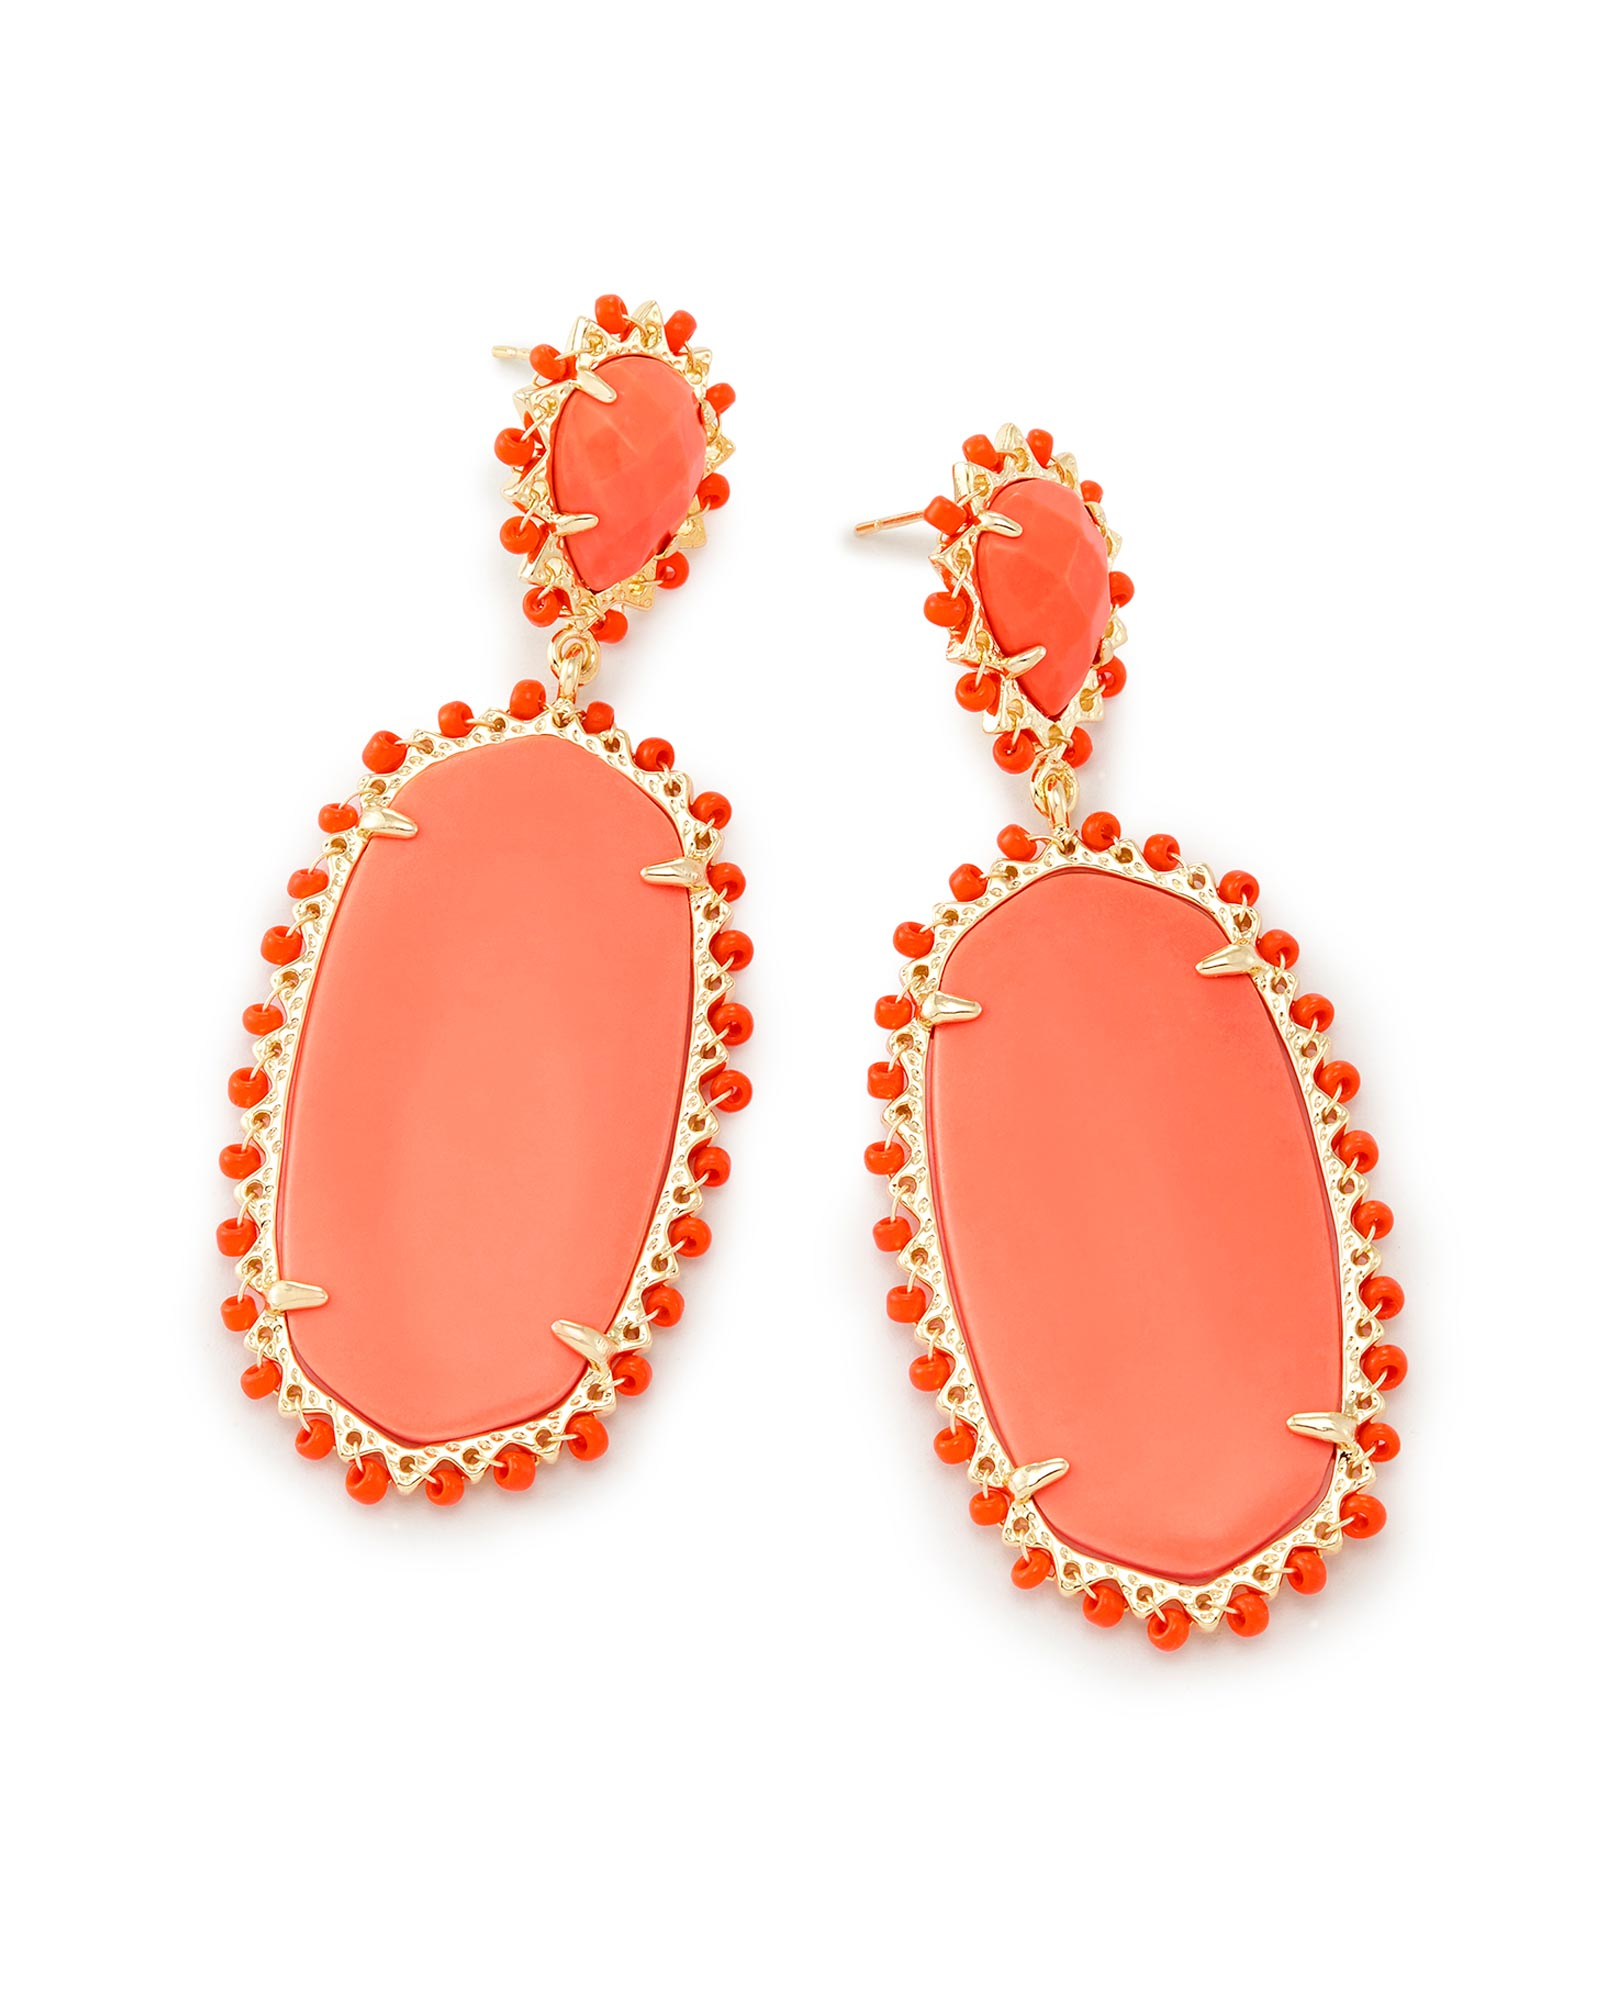 Parsons Statement Earrings in Coral